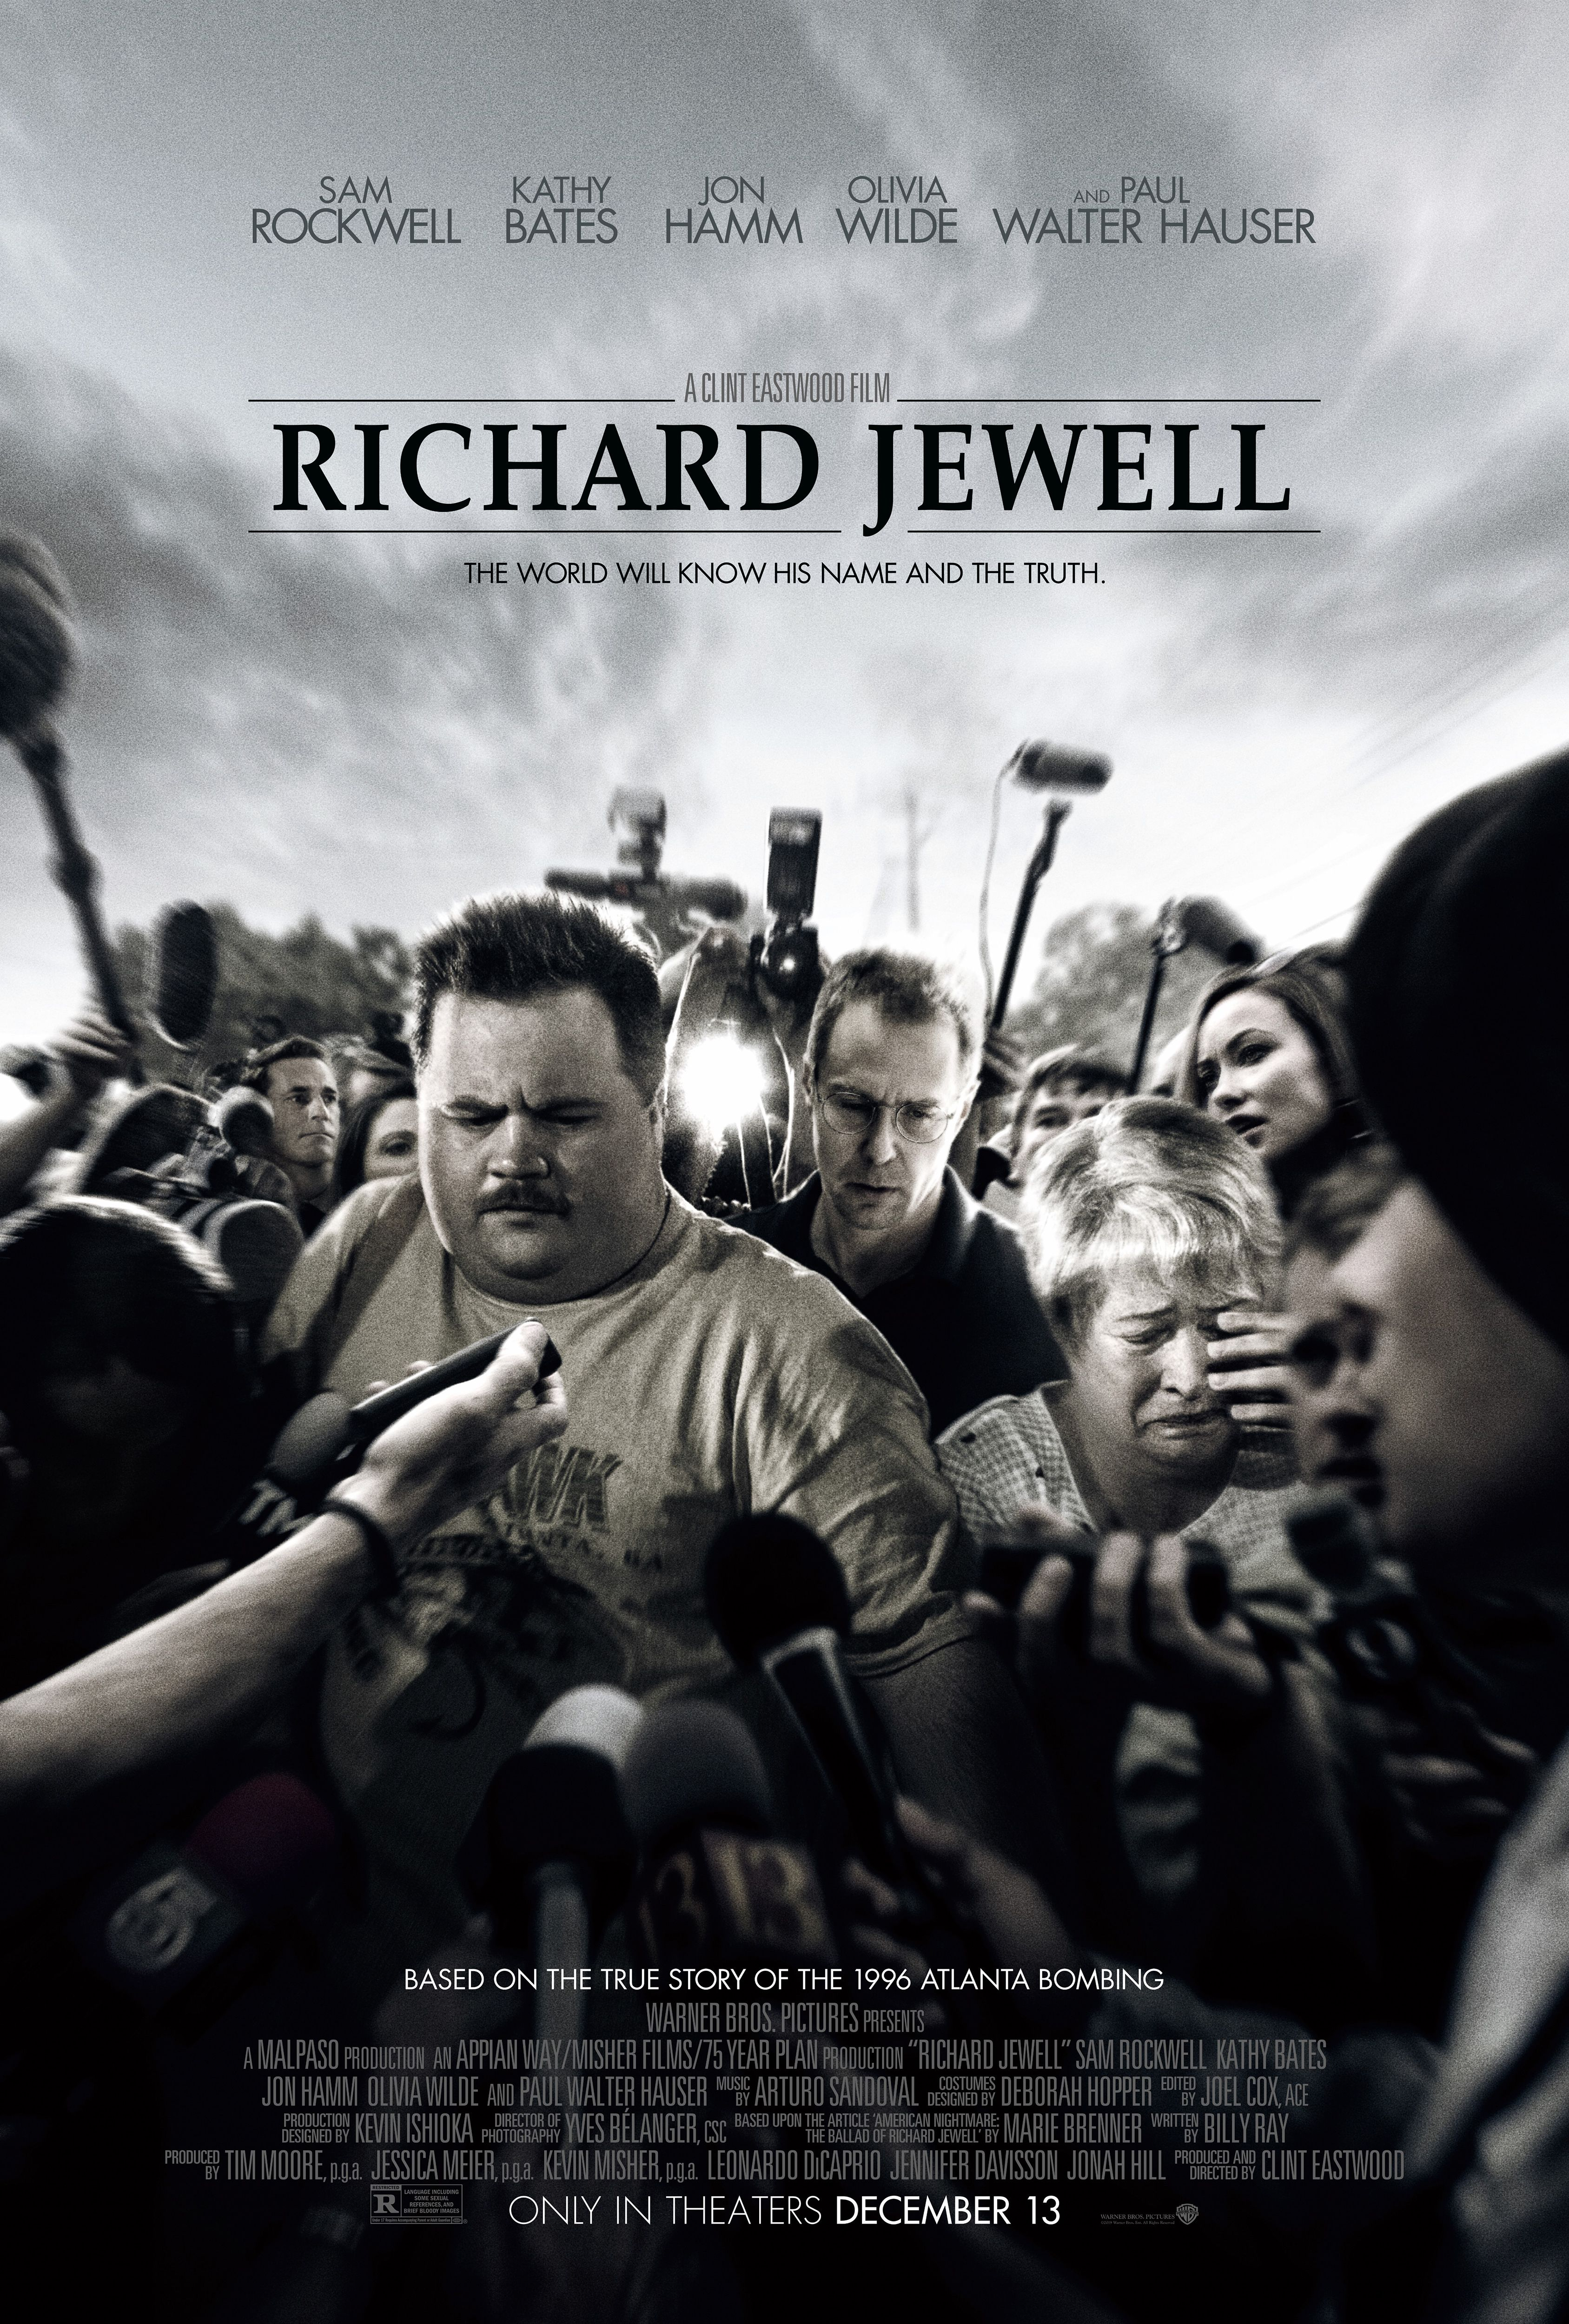 Richard Jewell Movie Poster 2019 Free Movies Online Full Movies Online Free Clint Eastwood